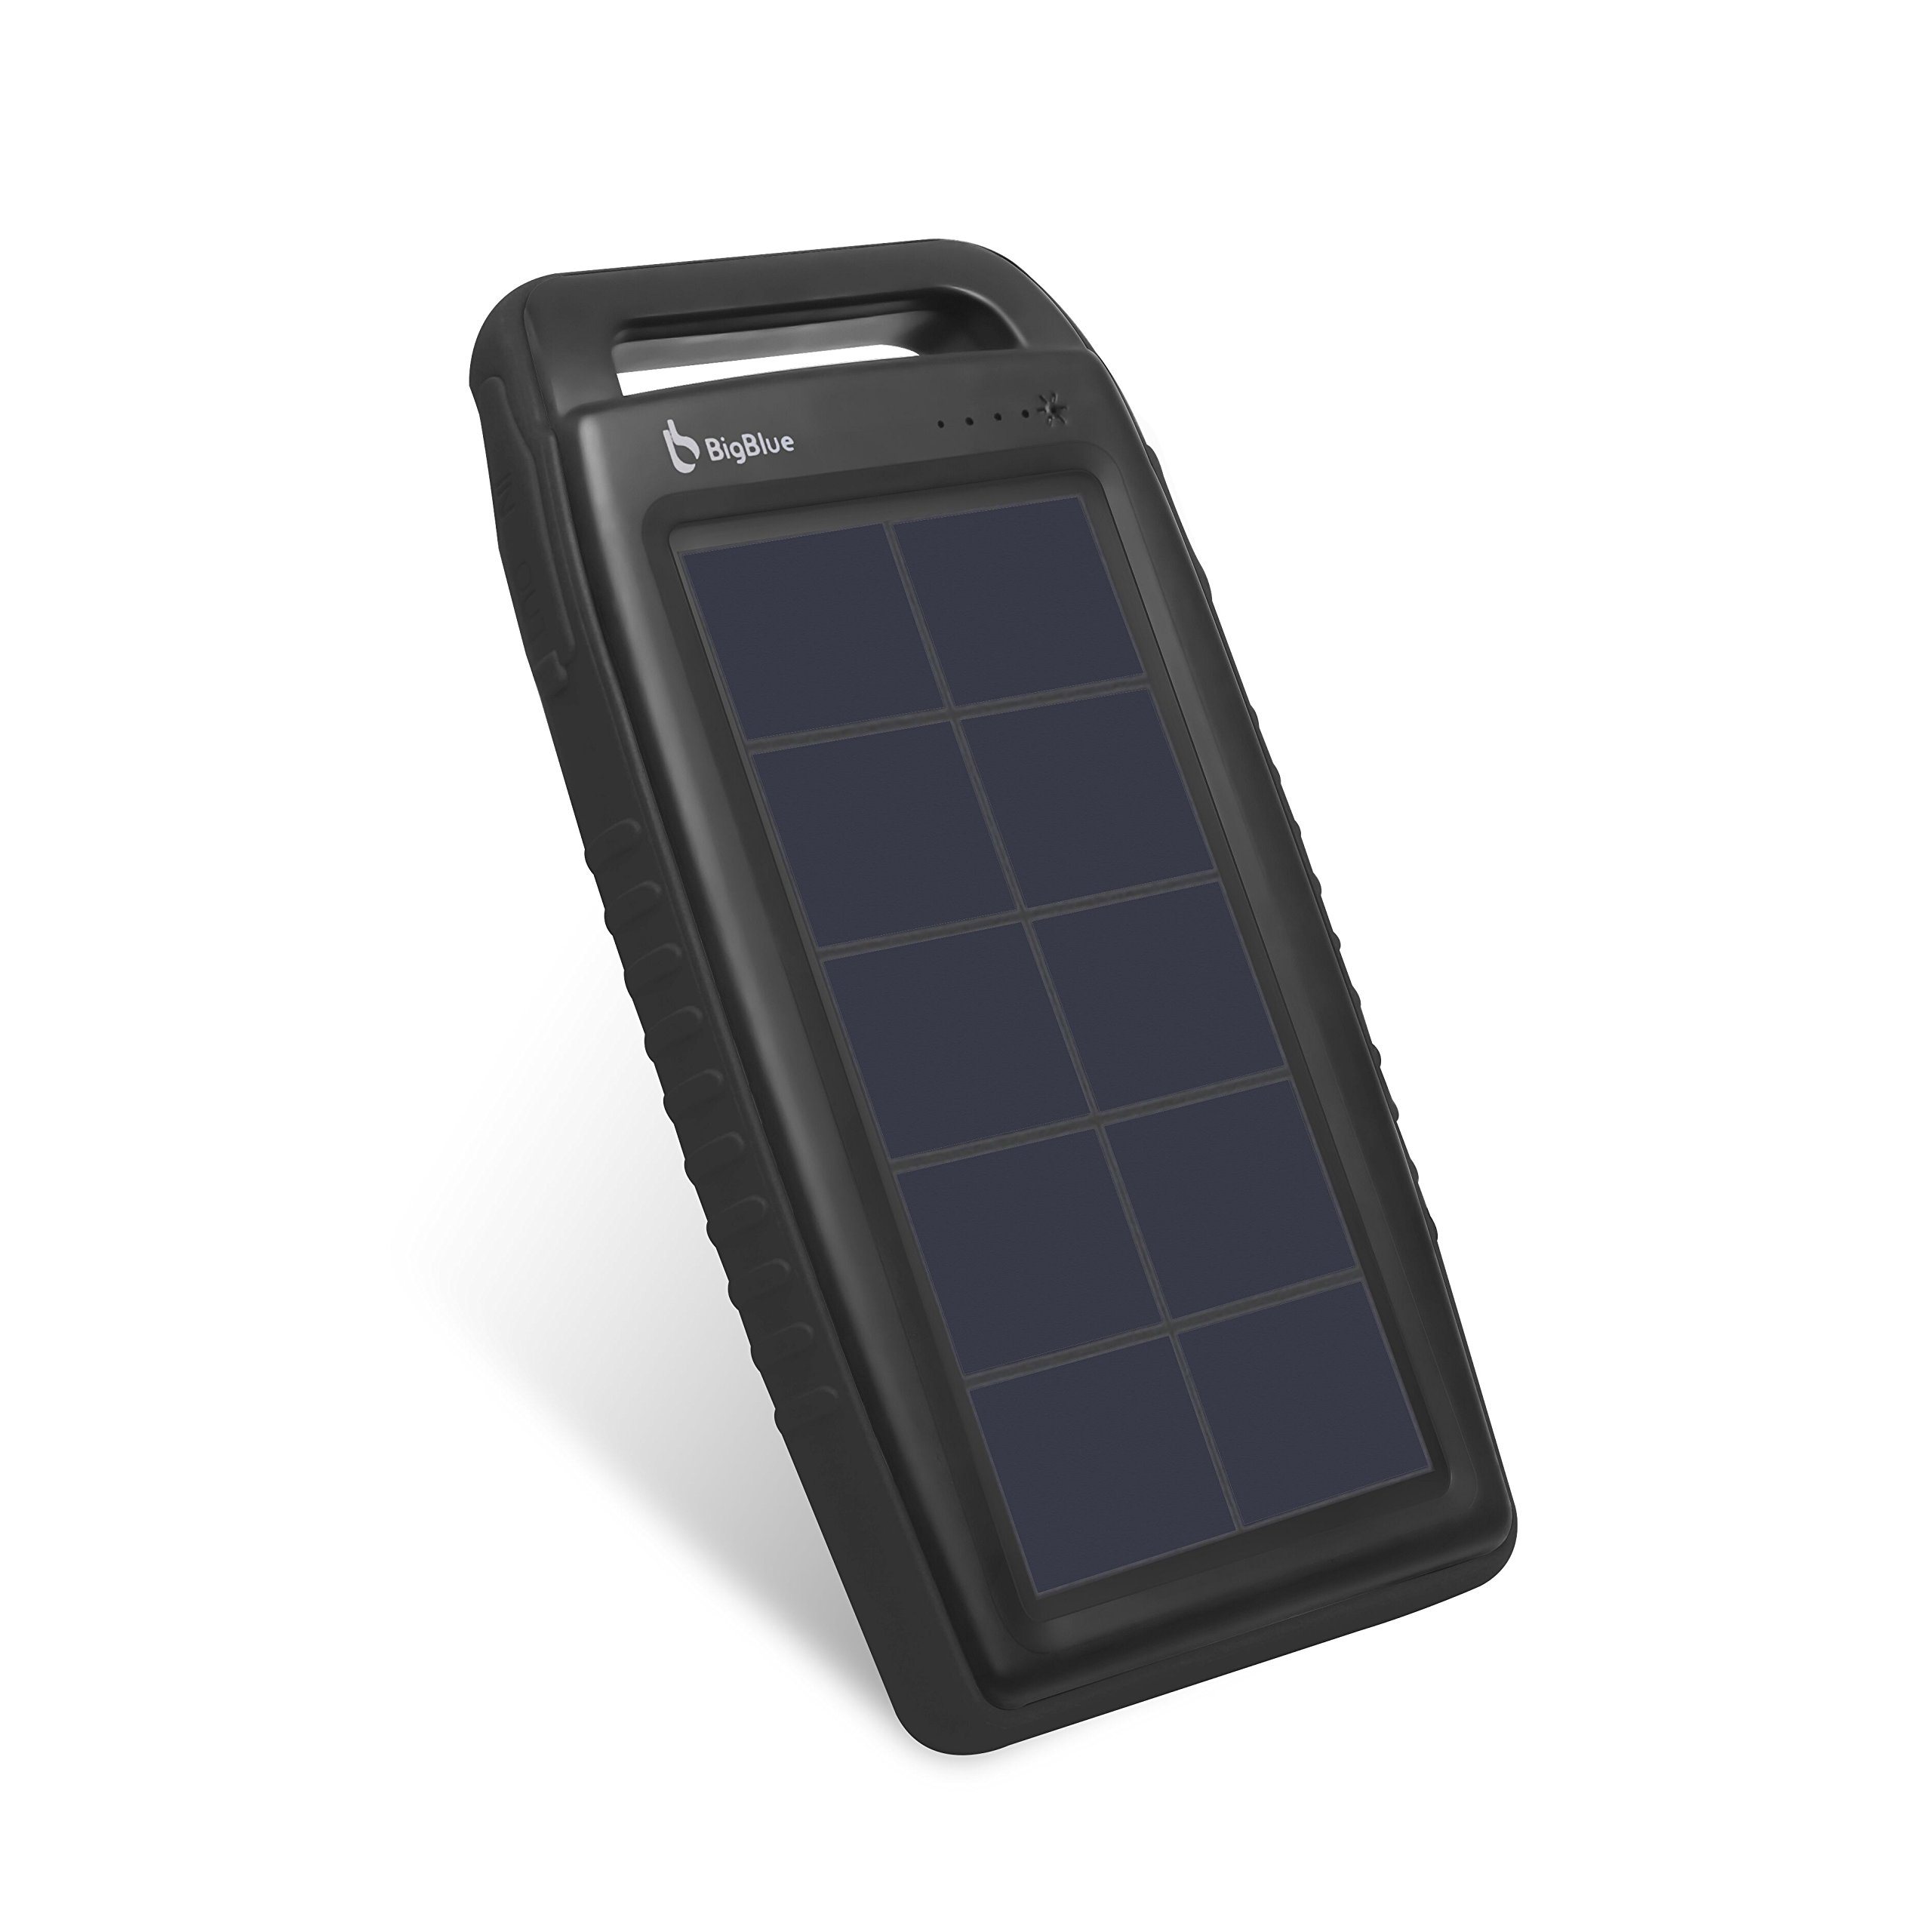 BigBlue Portable Solar Charger, 10000mAh Power Bank with 2 USB Output Ports, External Battery with 6 LED Light Compatible with iPhone, iPad, Tablet, Samsung, HTC, Android, GoPro Camera, GPS(Black)